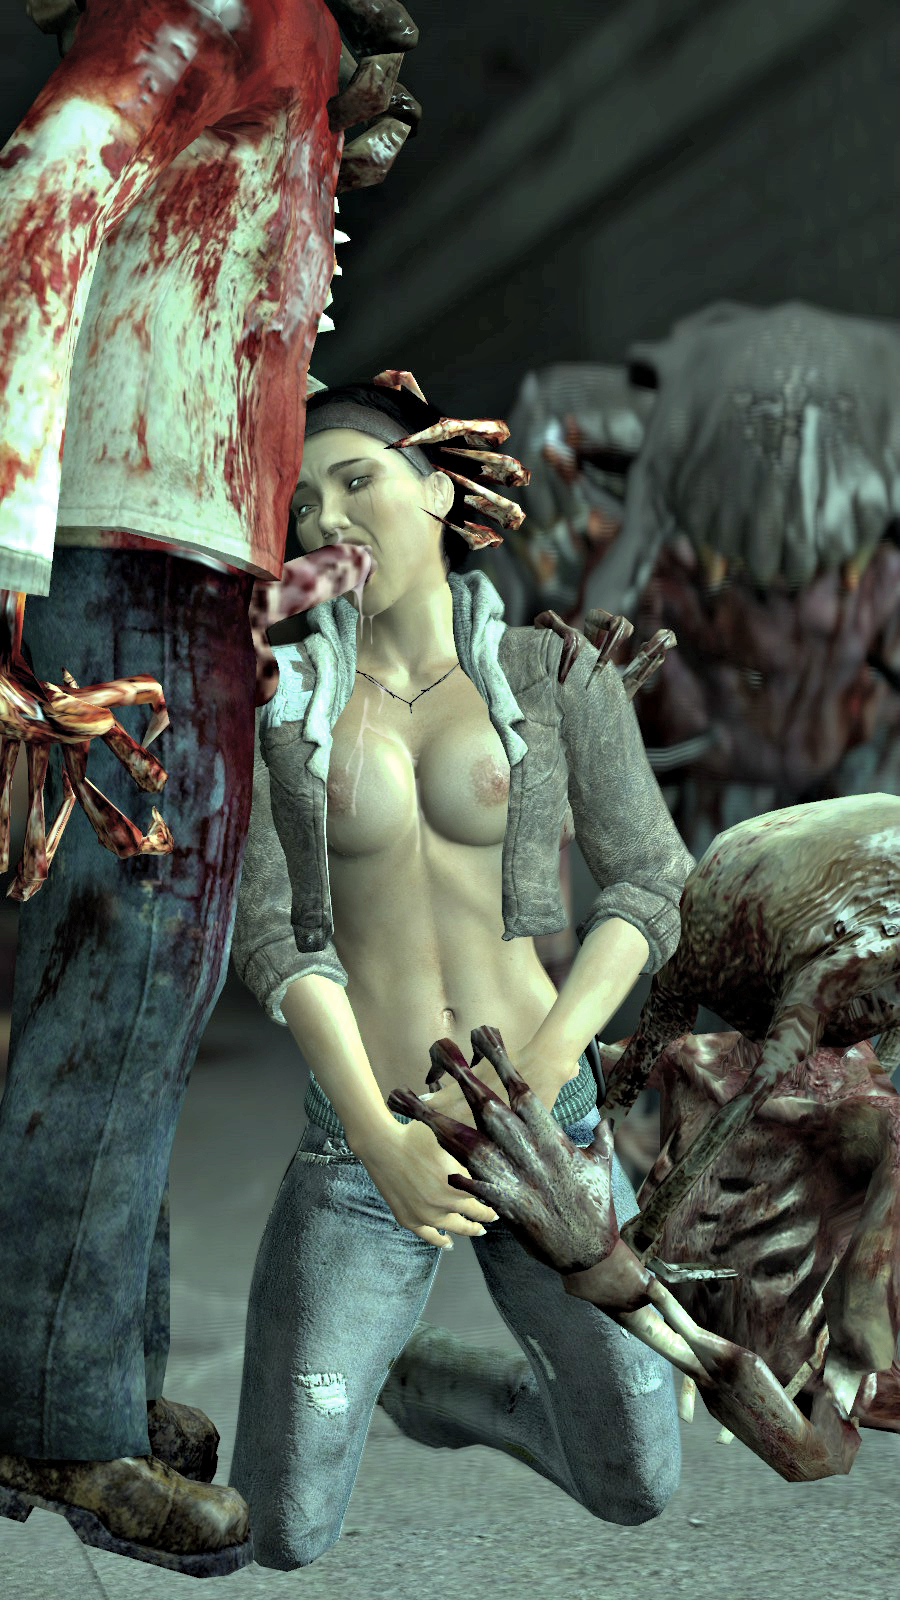 Porn half-life zombie sexy picture